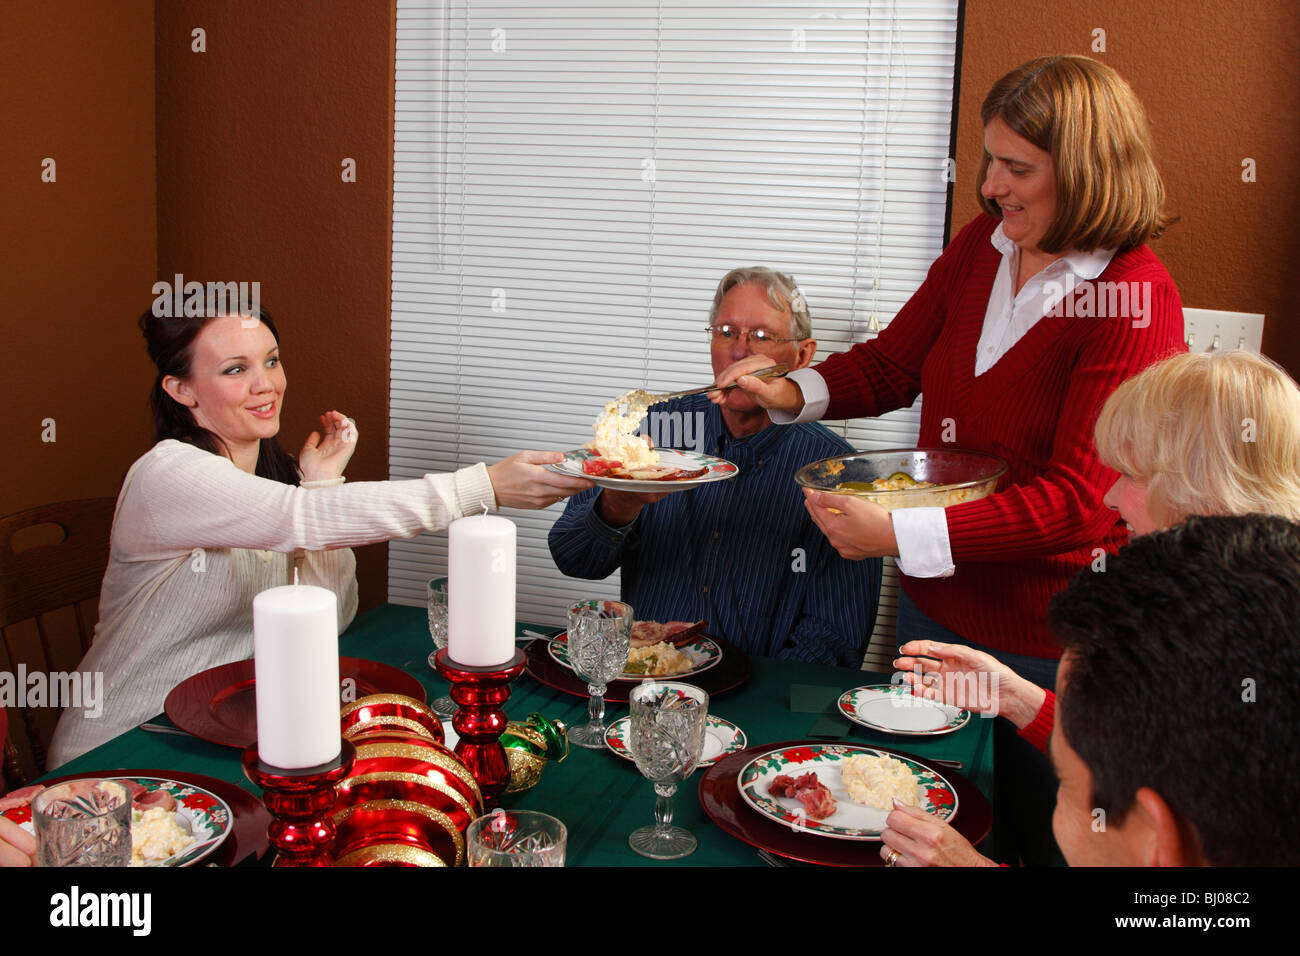 Food being served at Christmas dinner - Stock Image